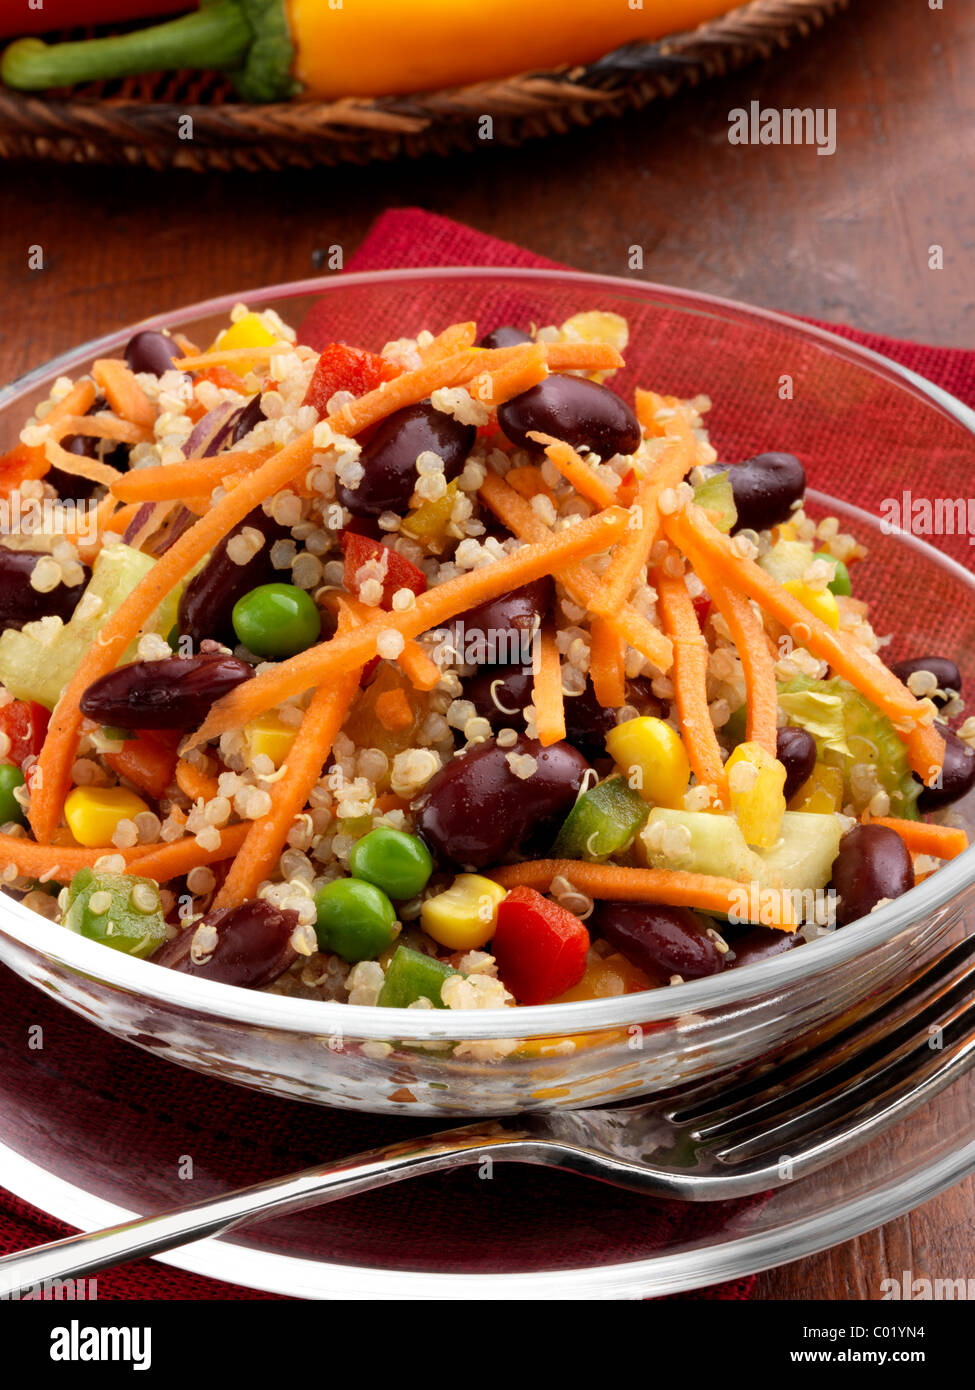 Individual portion of quinoa salad with peas sweetcorn carrots red peppers red kidney beans vegetarian meal - Stock Image